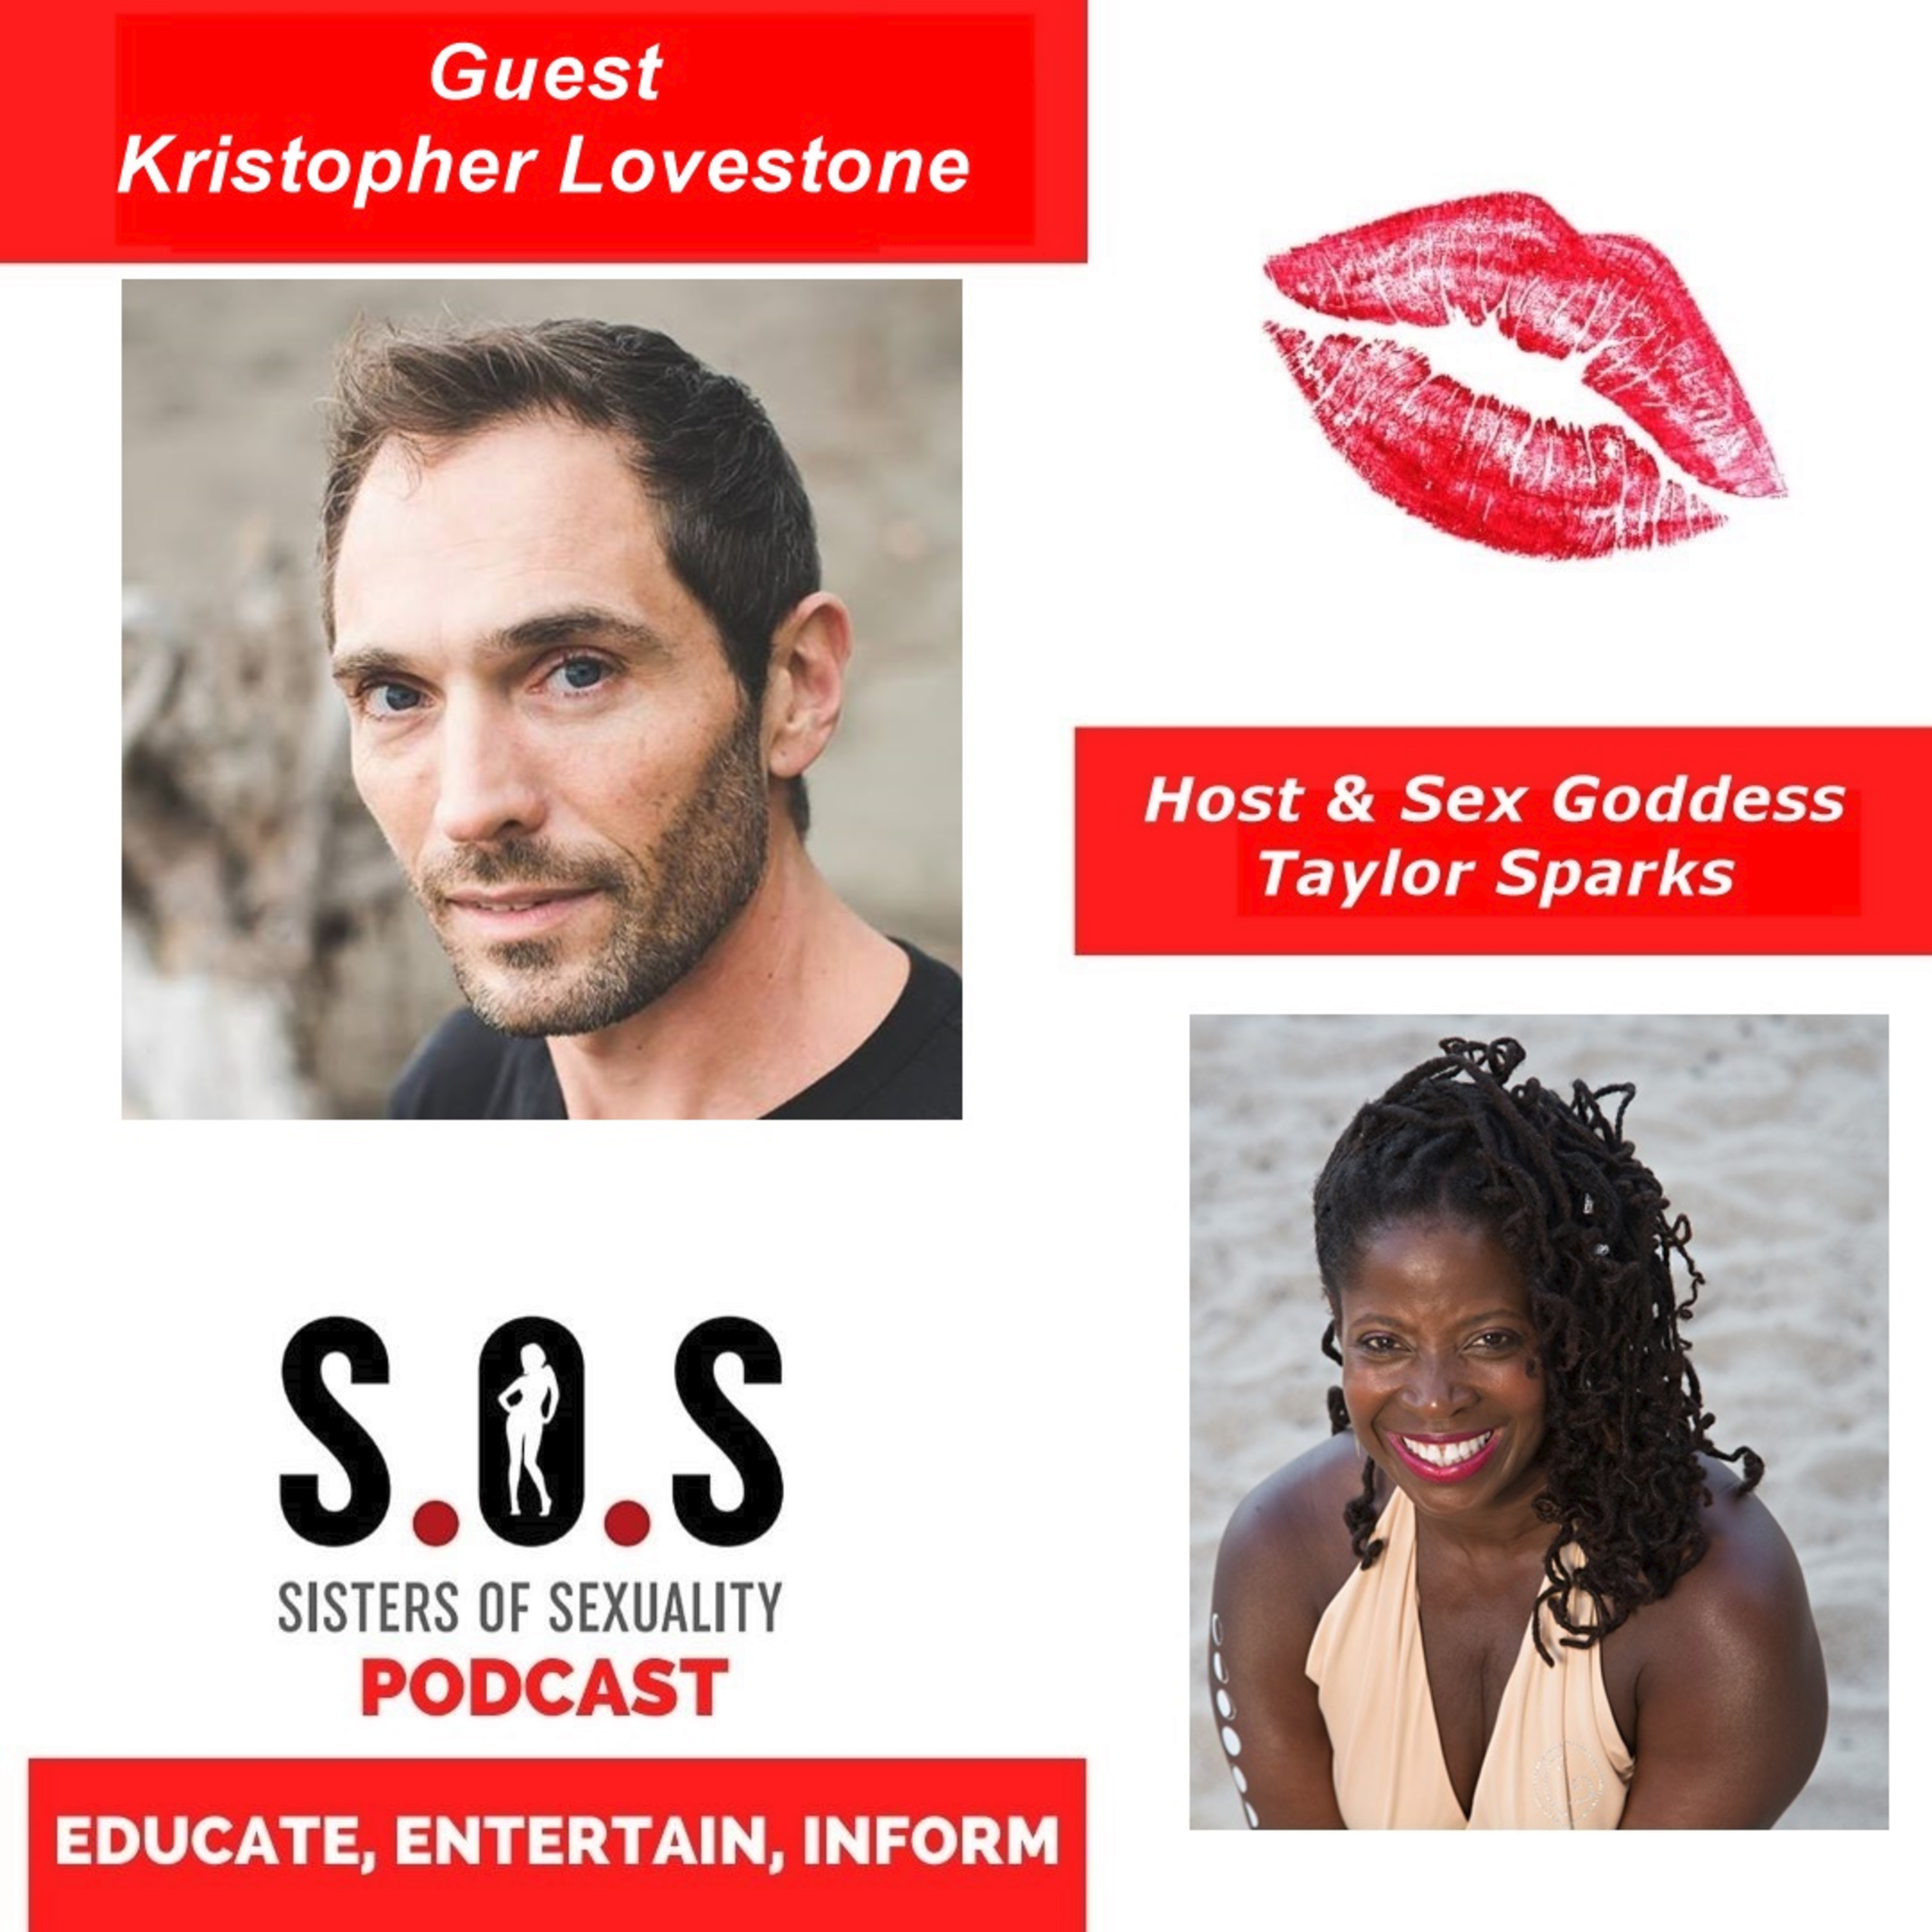 Sisters of Sexuality: Five Shades Of Play - Kristopher Lovestone's Book Offers Men An Empowered Sexuality Manual